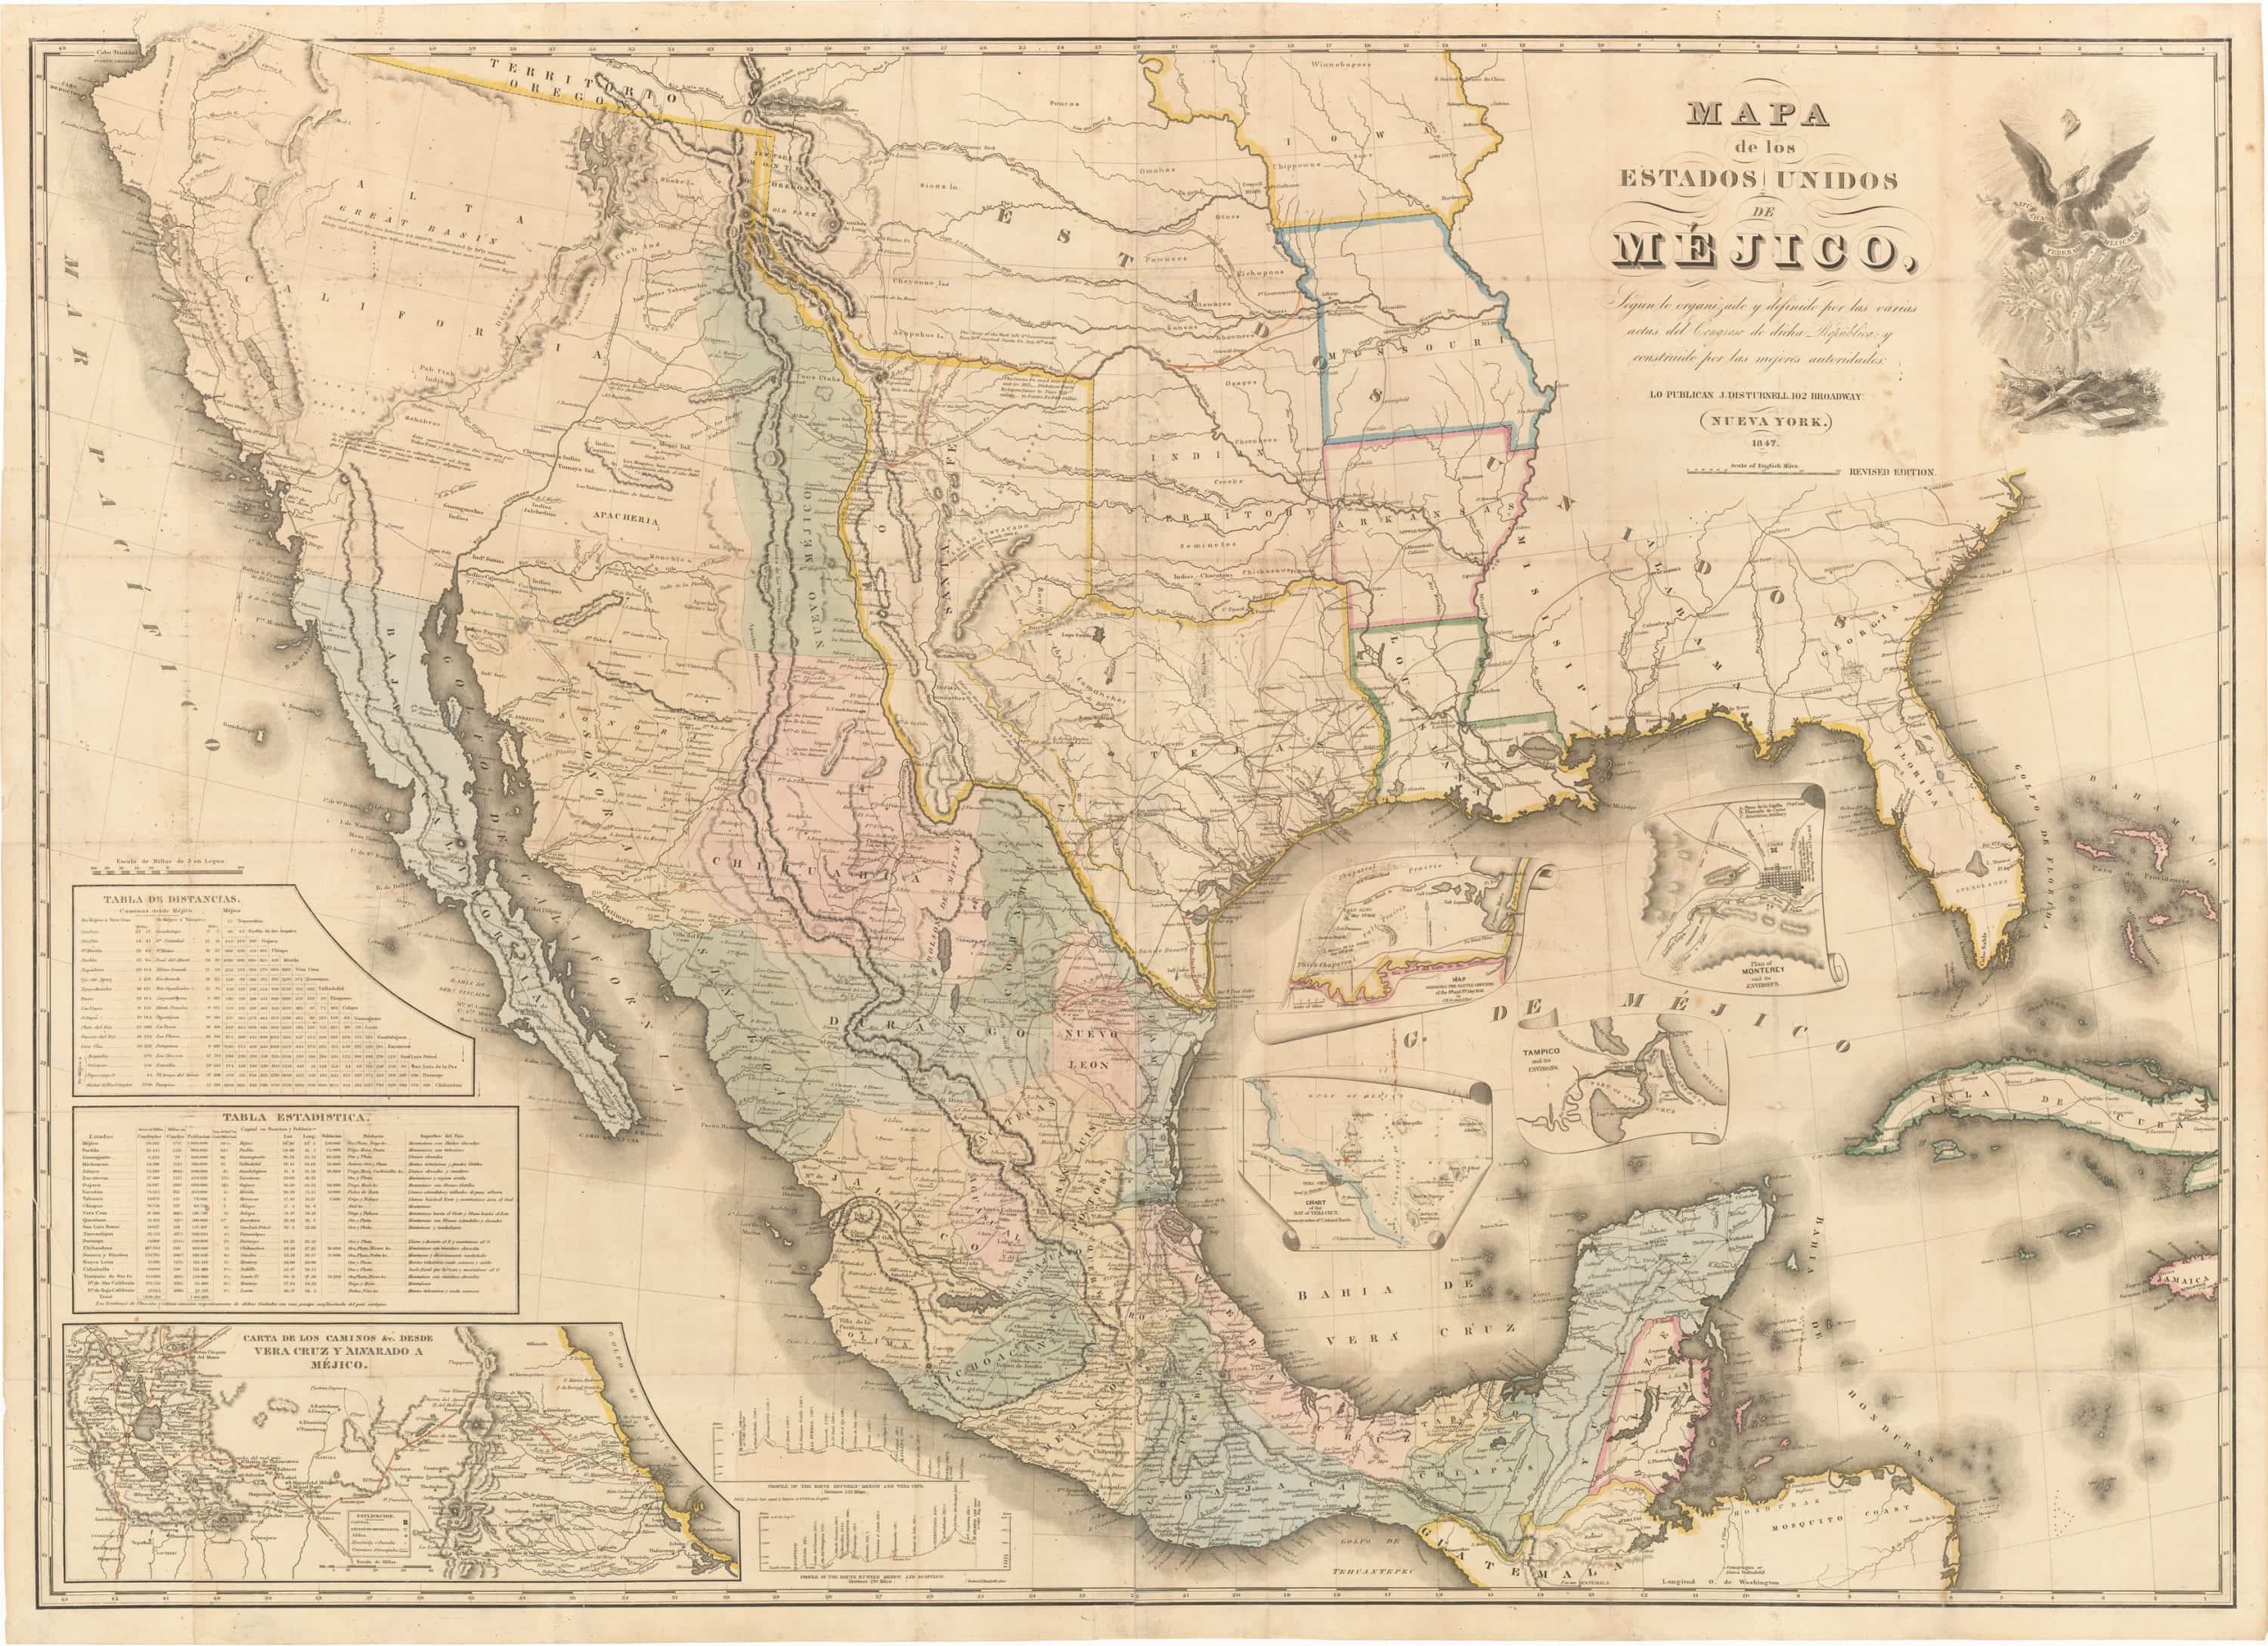 The 1847 Disturnell Treaty Map of Mexico and the American West